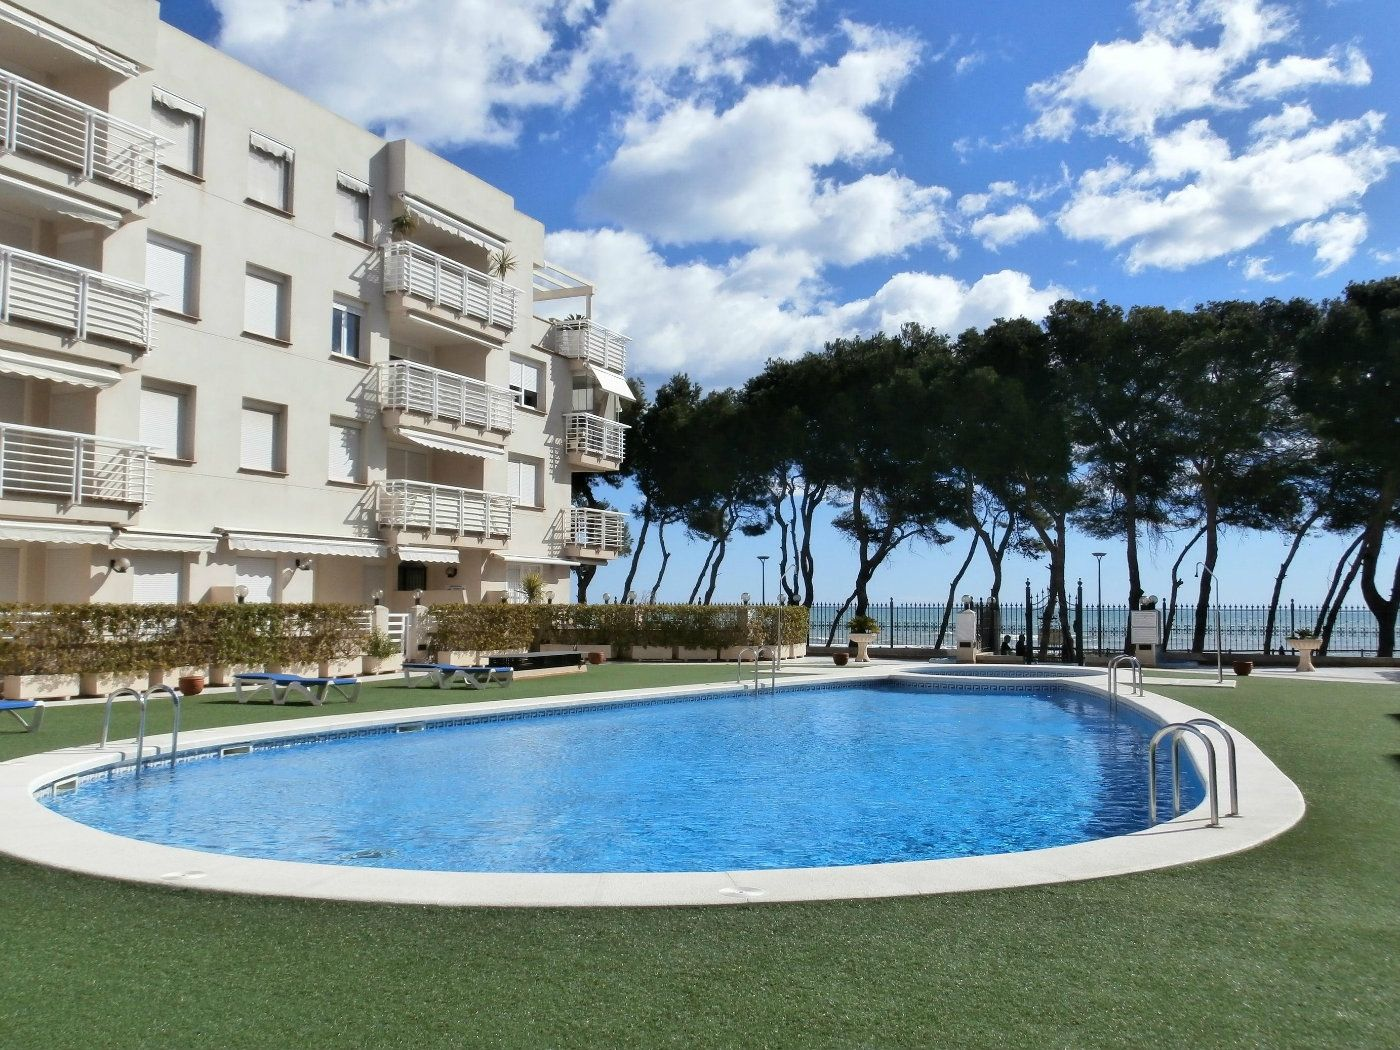 Appartement in Camino Atall (l´) Z.alcossebre, 1